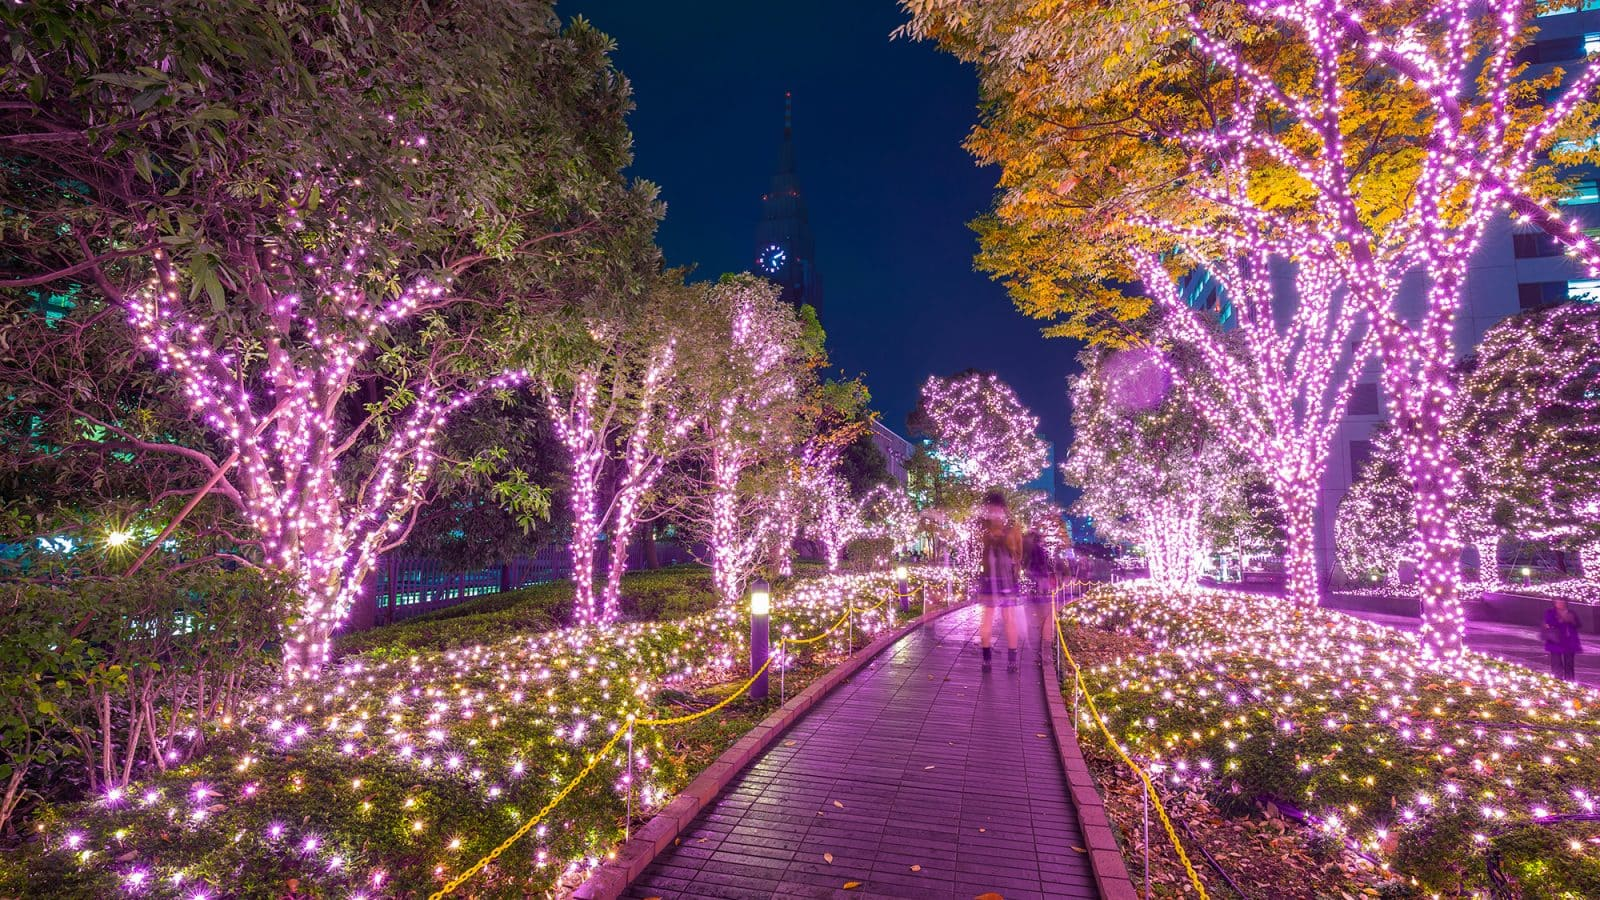 Christmas Traditions in Japan - How Xmas is Celebrated